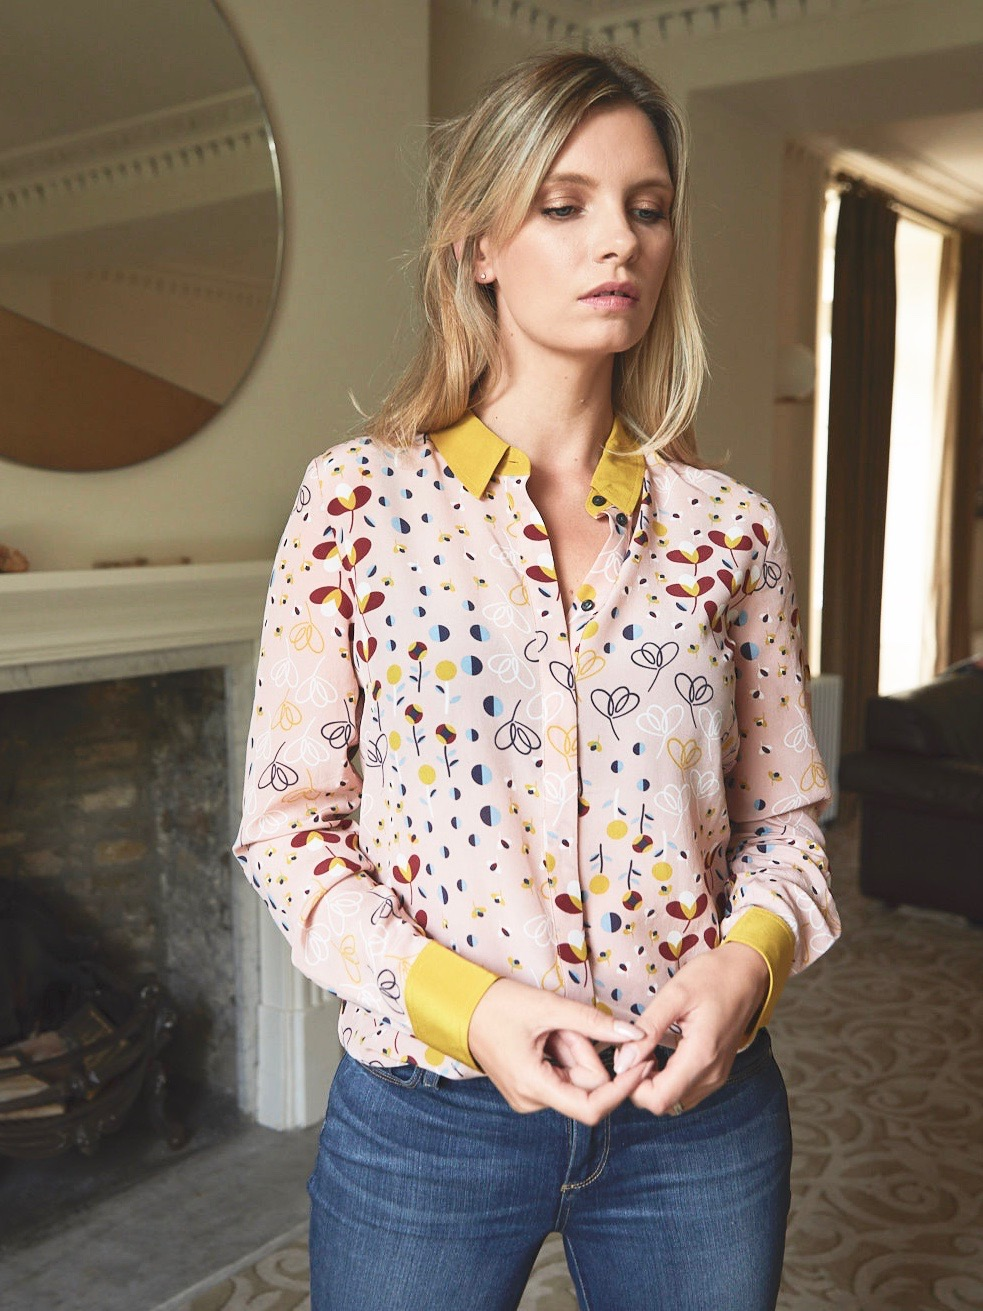 The Boden Silk Shirt